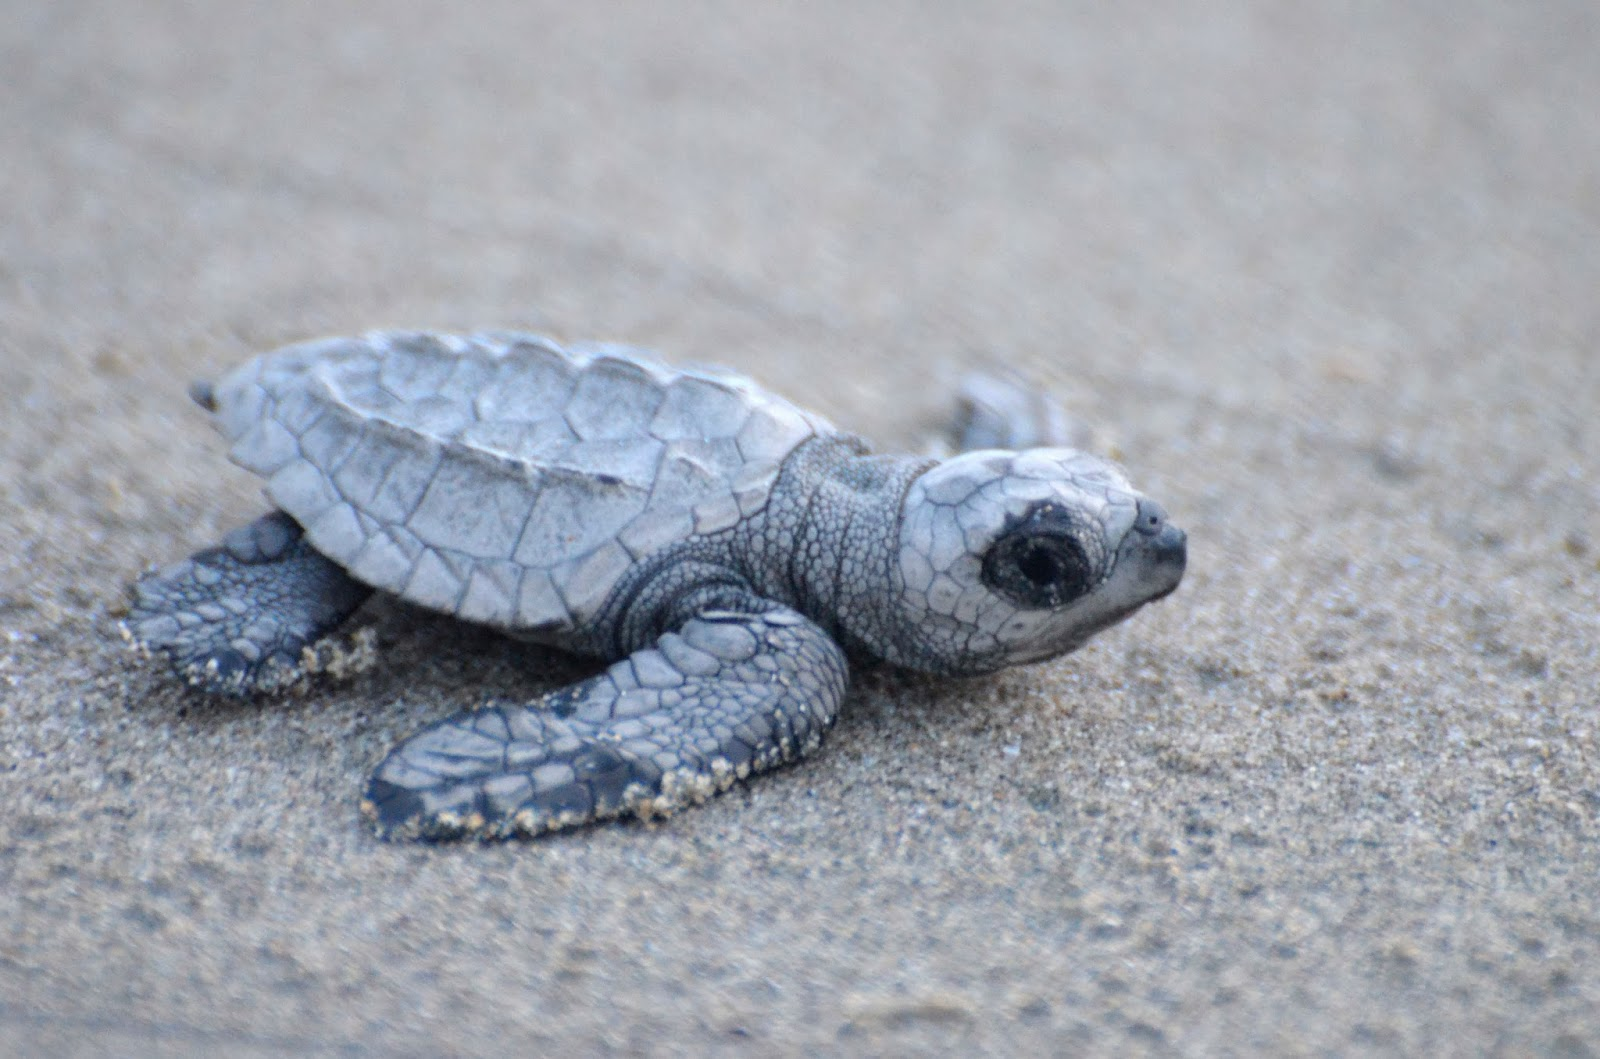 The Sleeping Turtle | College, Cerebral Palsy, Family, Life  |Baby Sea Turtles